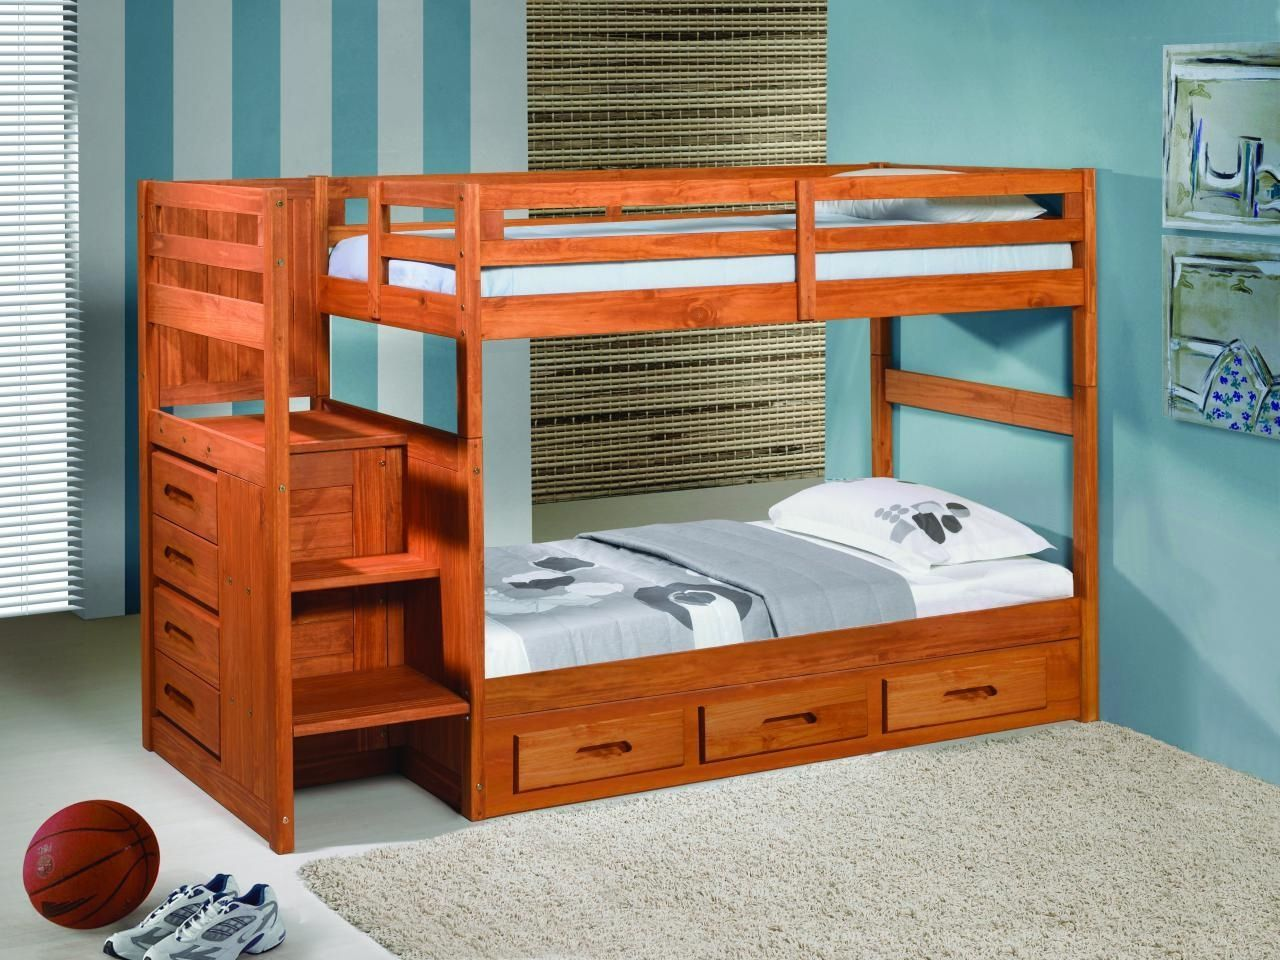 70 Used Kids Bunk Beds Bedroom Interior Designing Check More At